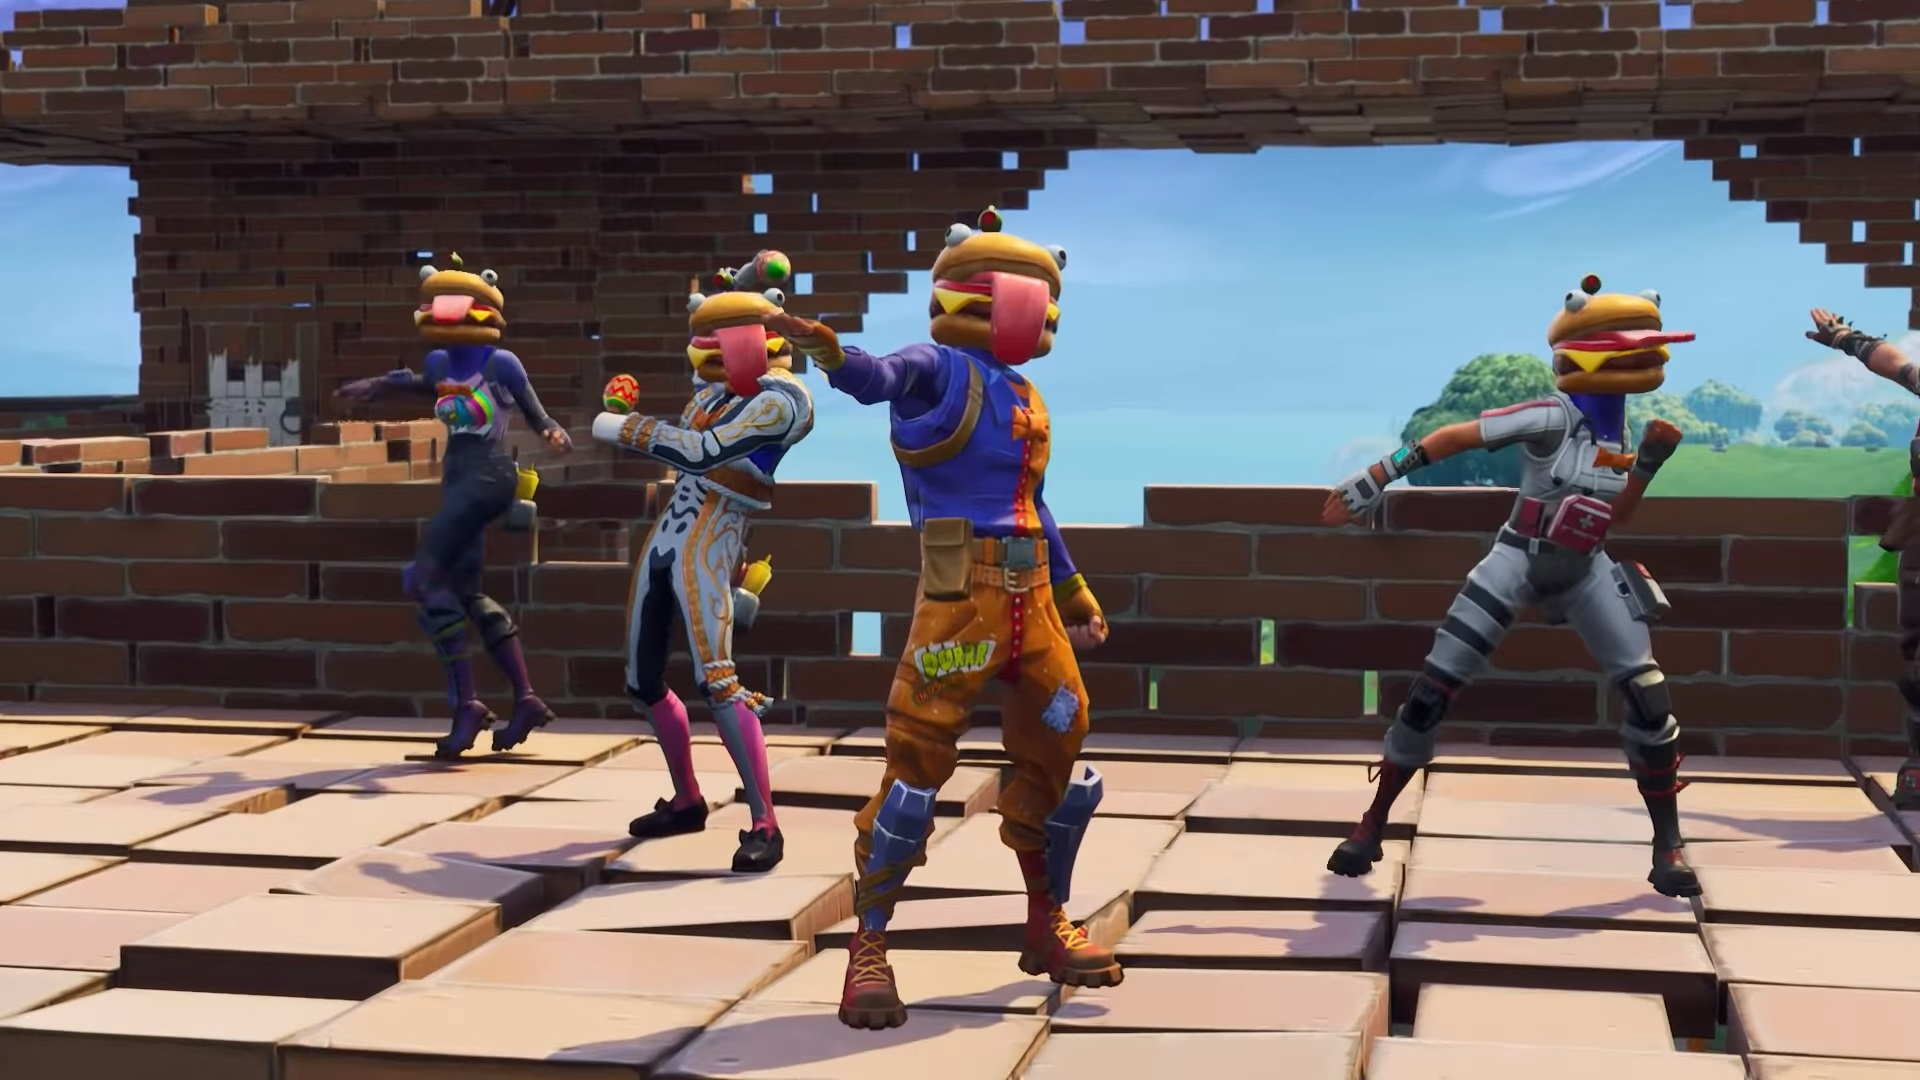 Fortnite Guide: How to Secure Your First Fortnite Mobile Win